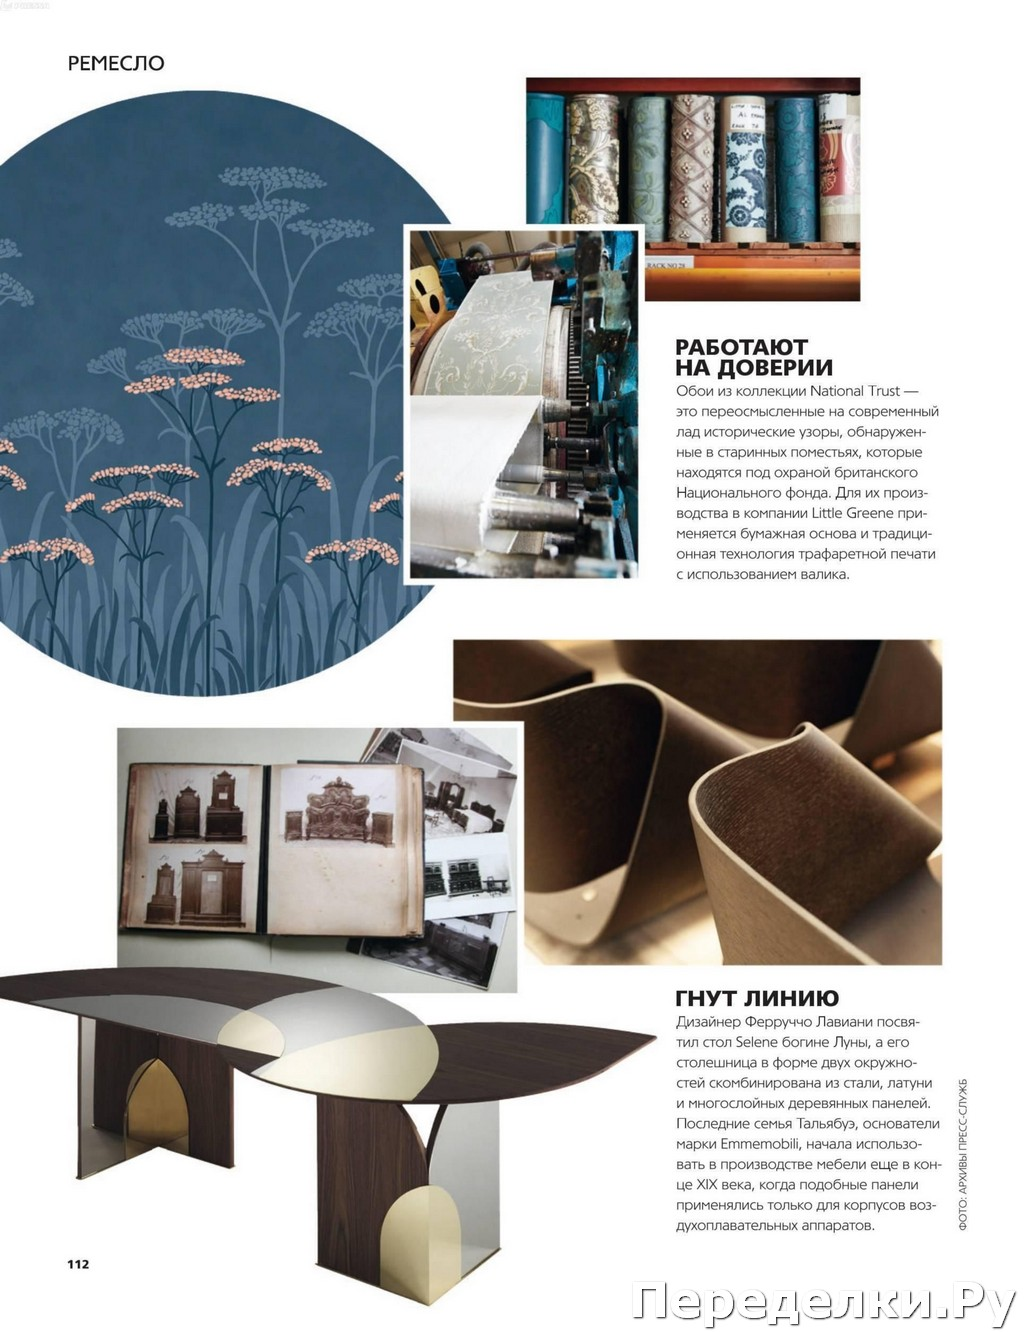 AD Architectural Digest 4 aprel 2020 109